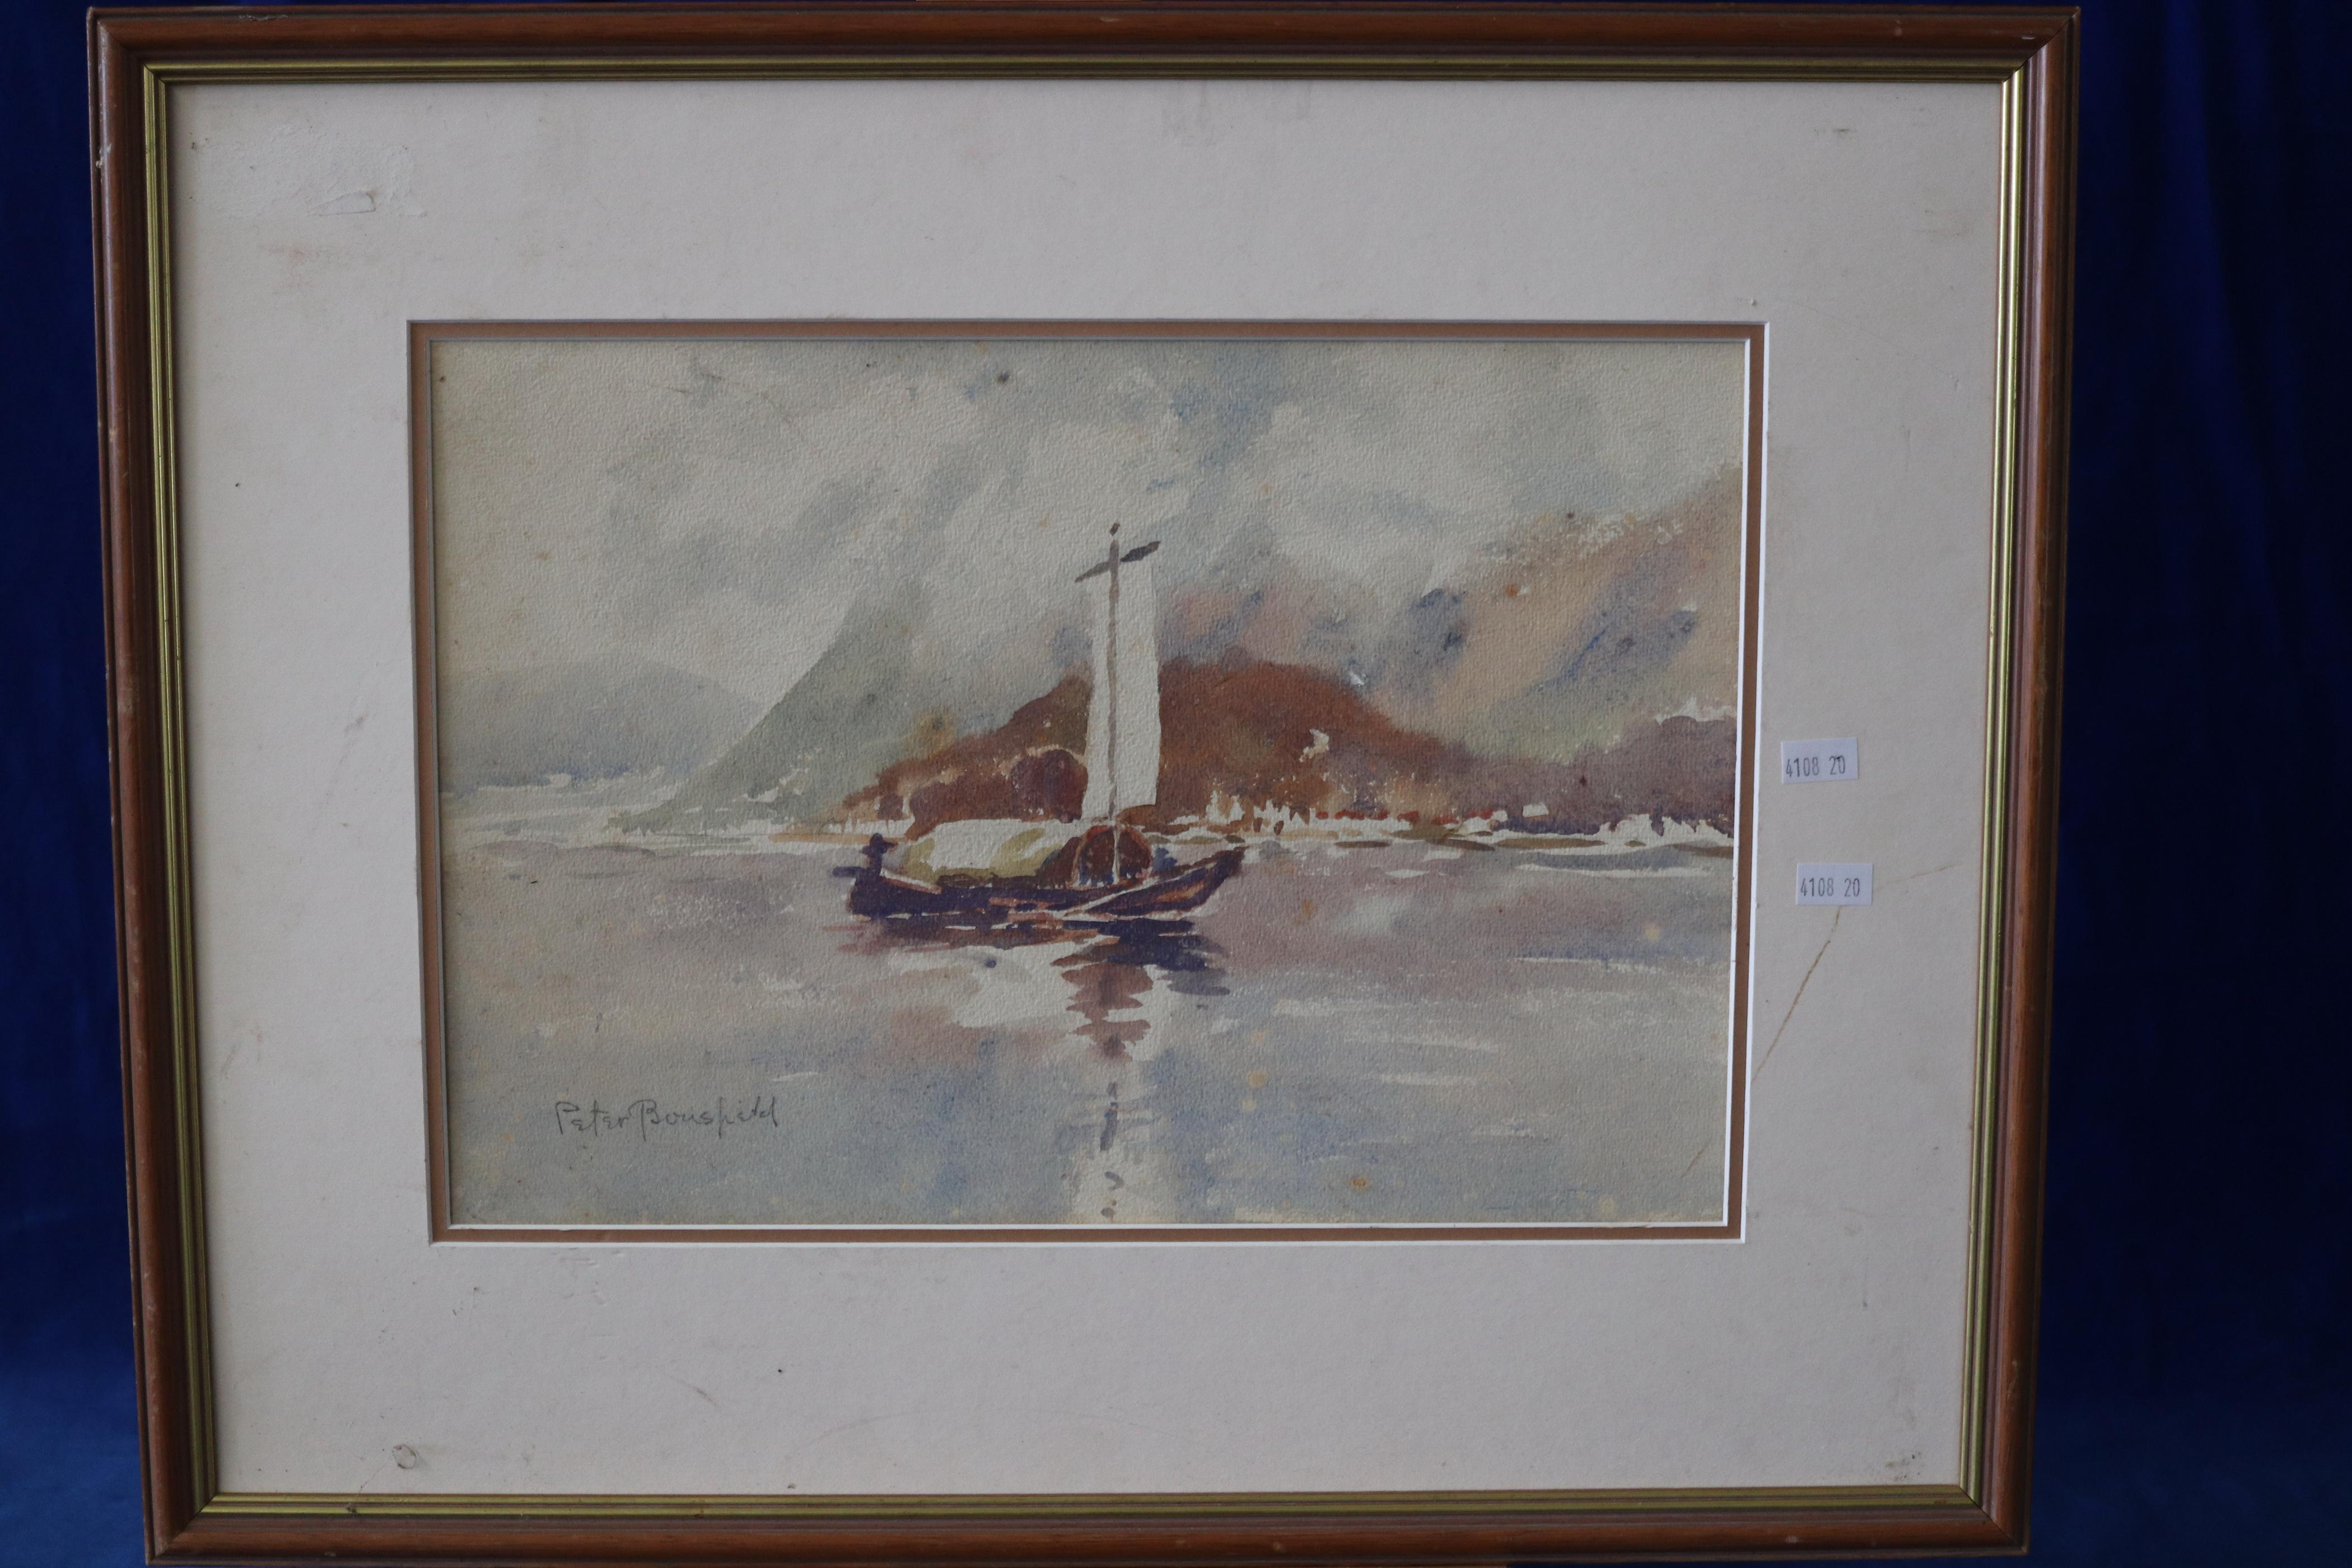 VINTAGE WATERCOLOUR BY PETER BOUSFIELD SYDNEY C. 1930